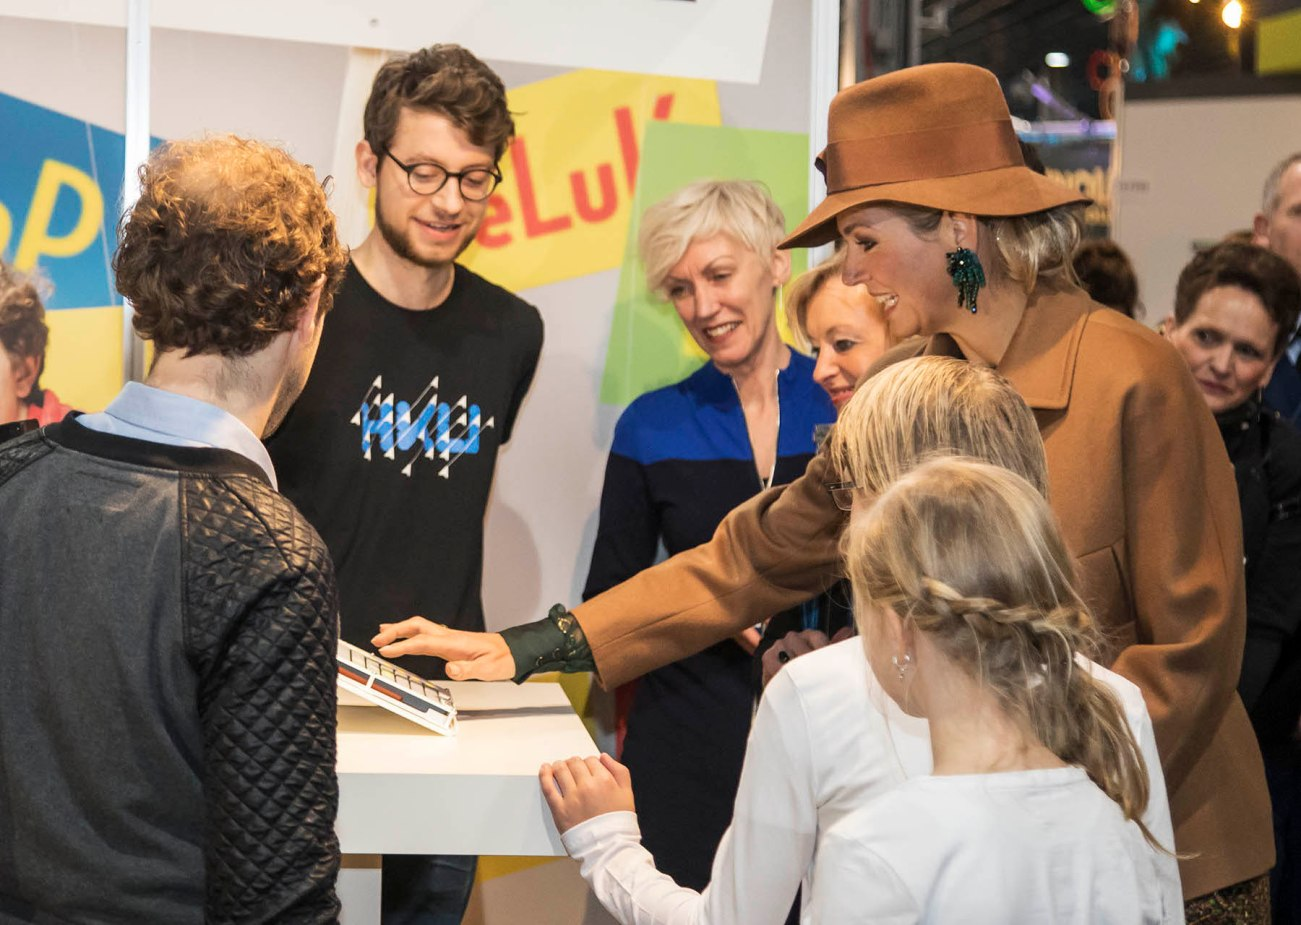 Queen Maxima playing our project Otomori. photo: Jaarbeurs